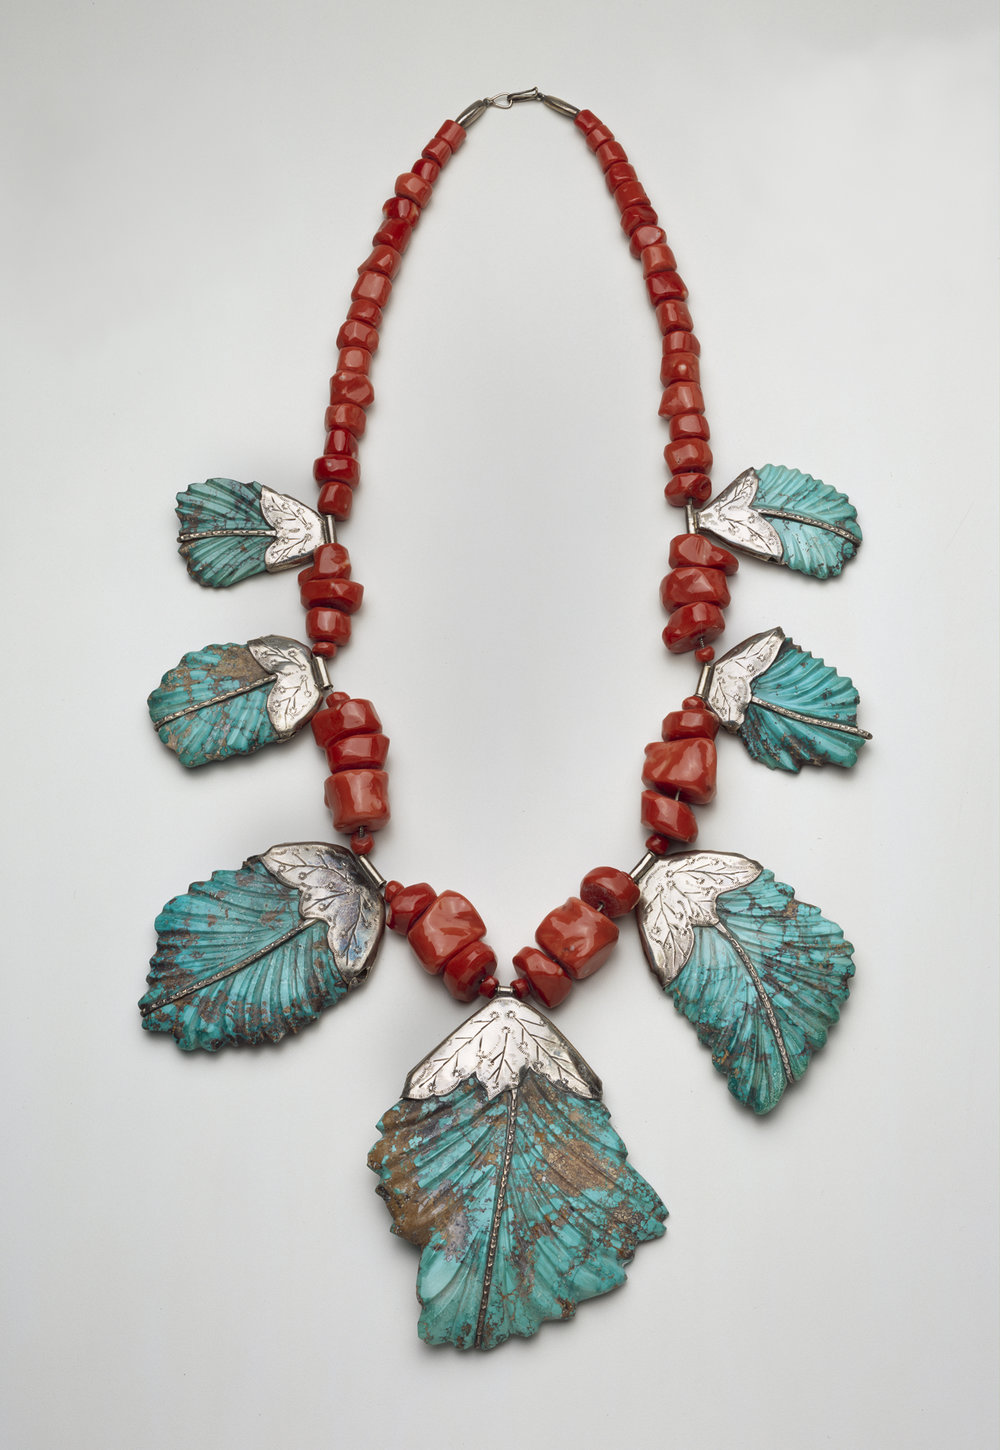 Leekya Deyuse (1889-1966), Zuni, New Mexico Leaf Necklace, ca. 1935 Silver, turquoise and coral Length: 33 1/2 in.  (85.1 cm) The Nelson-Atkins Museum of Art, Kansas City, Missouri. Gift of Mrs. David T. Beals, 67-44/4